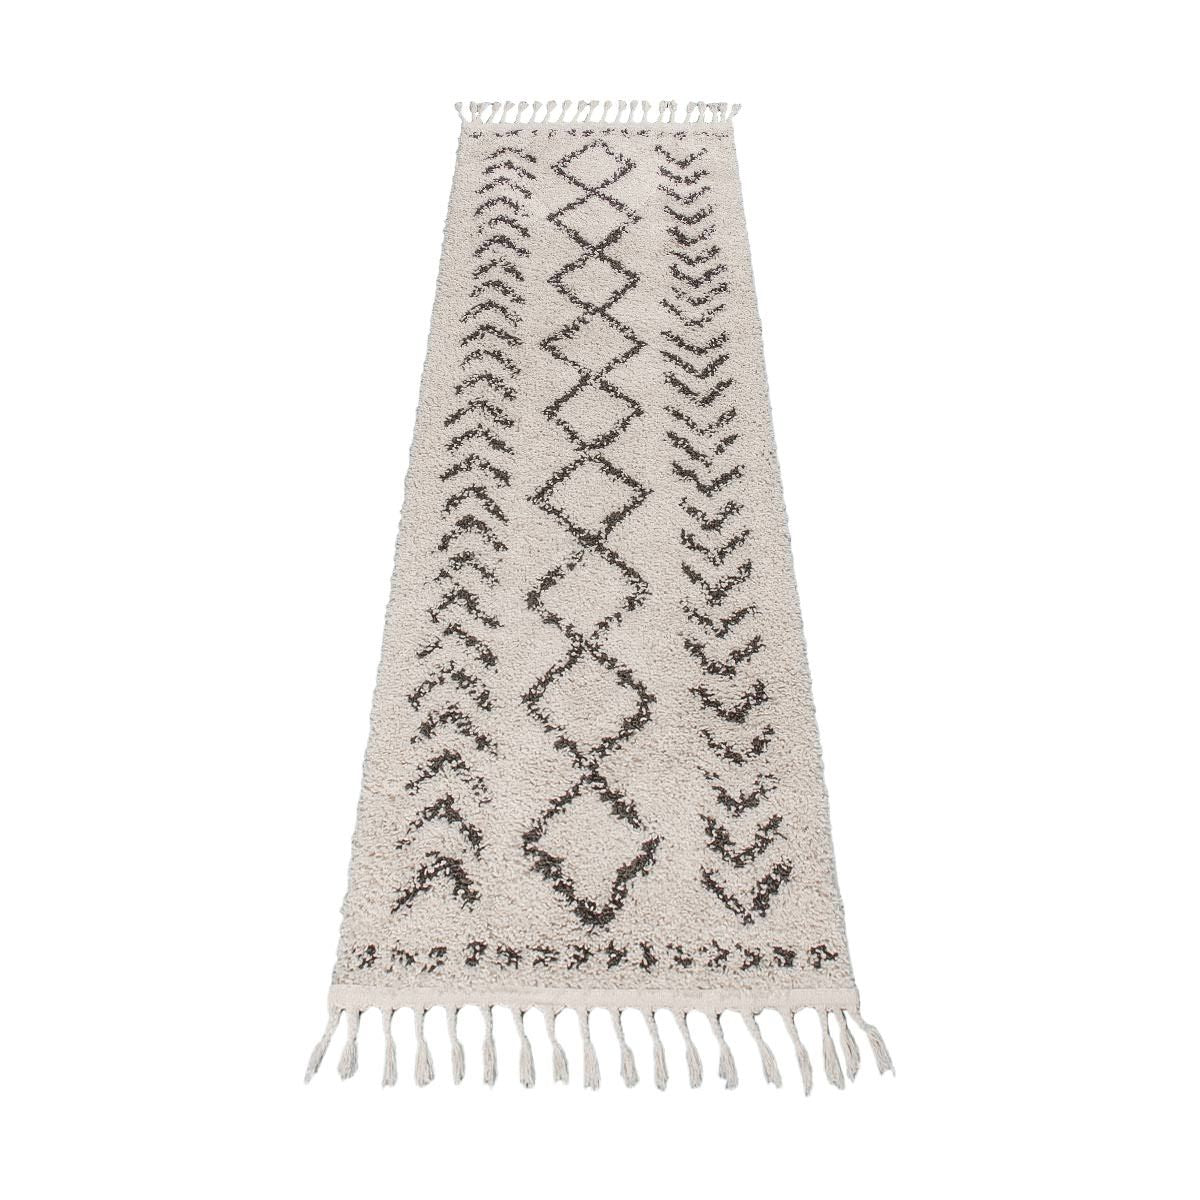 Shaggy Marrakech Rug 04 Cream/Black Runner 5